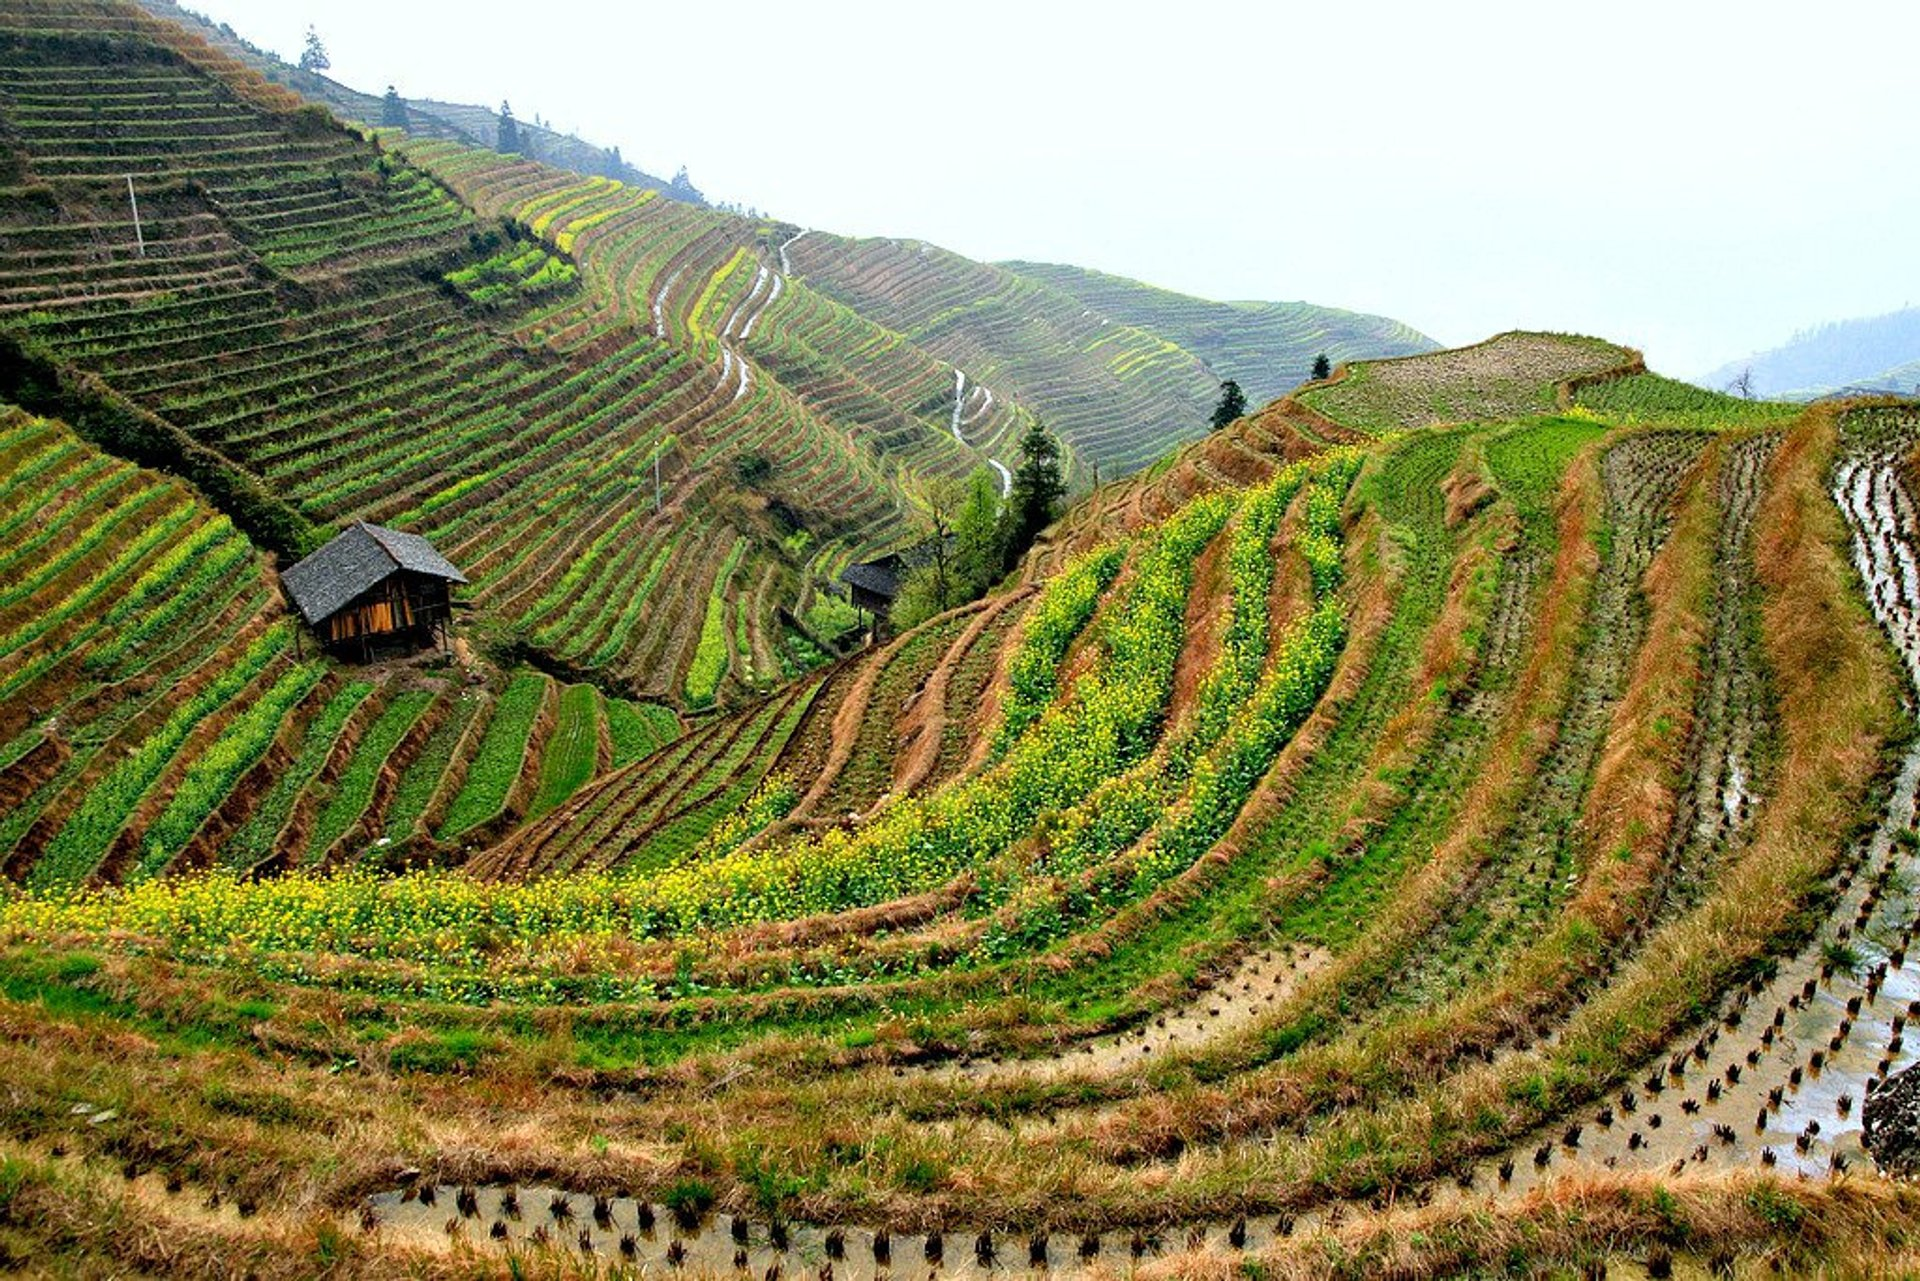 Best time to see Longsheng (Longji) Rice Terraces in China 2020